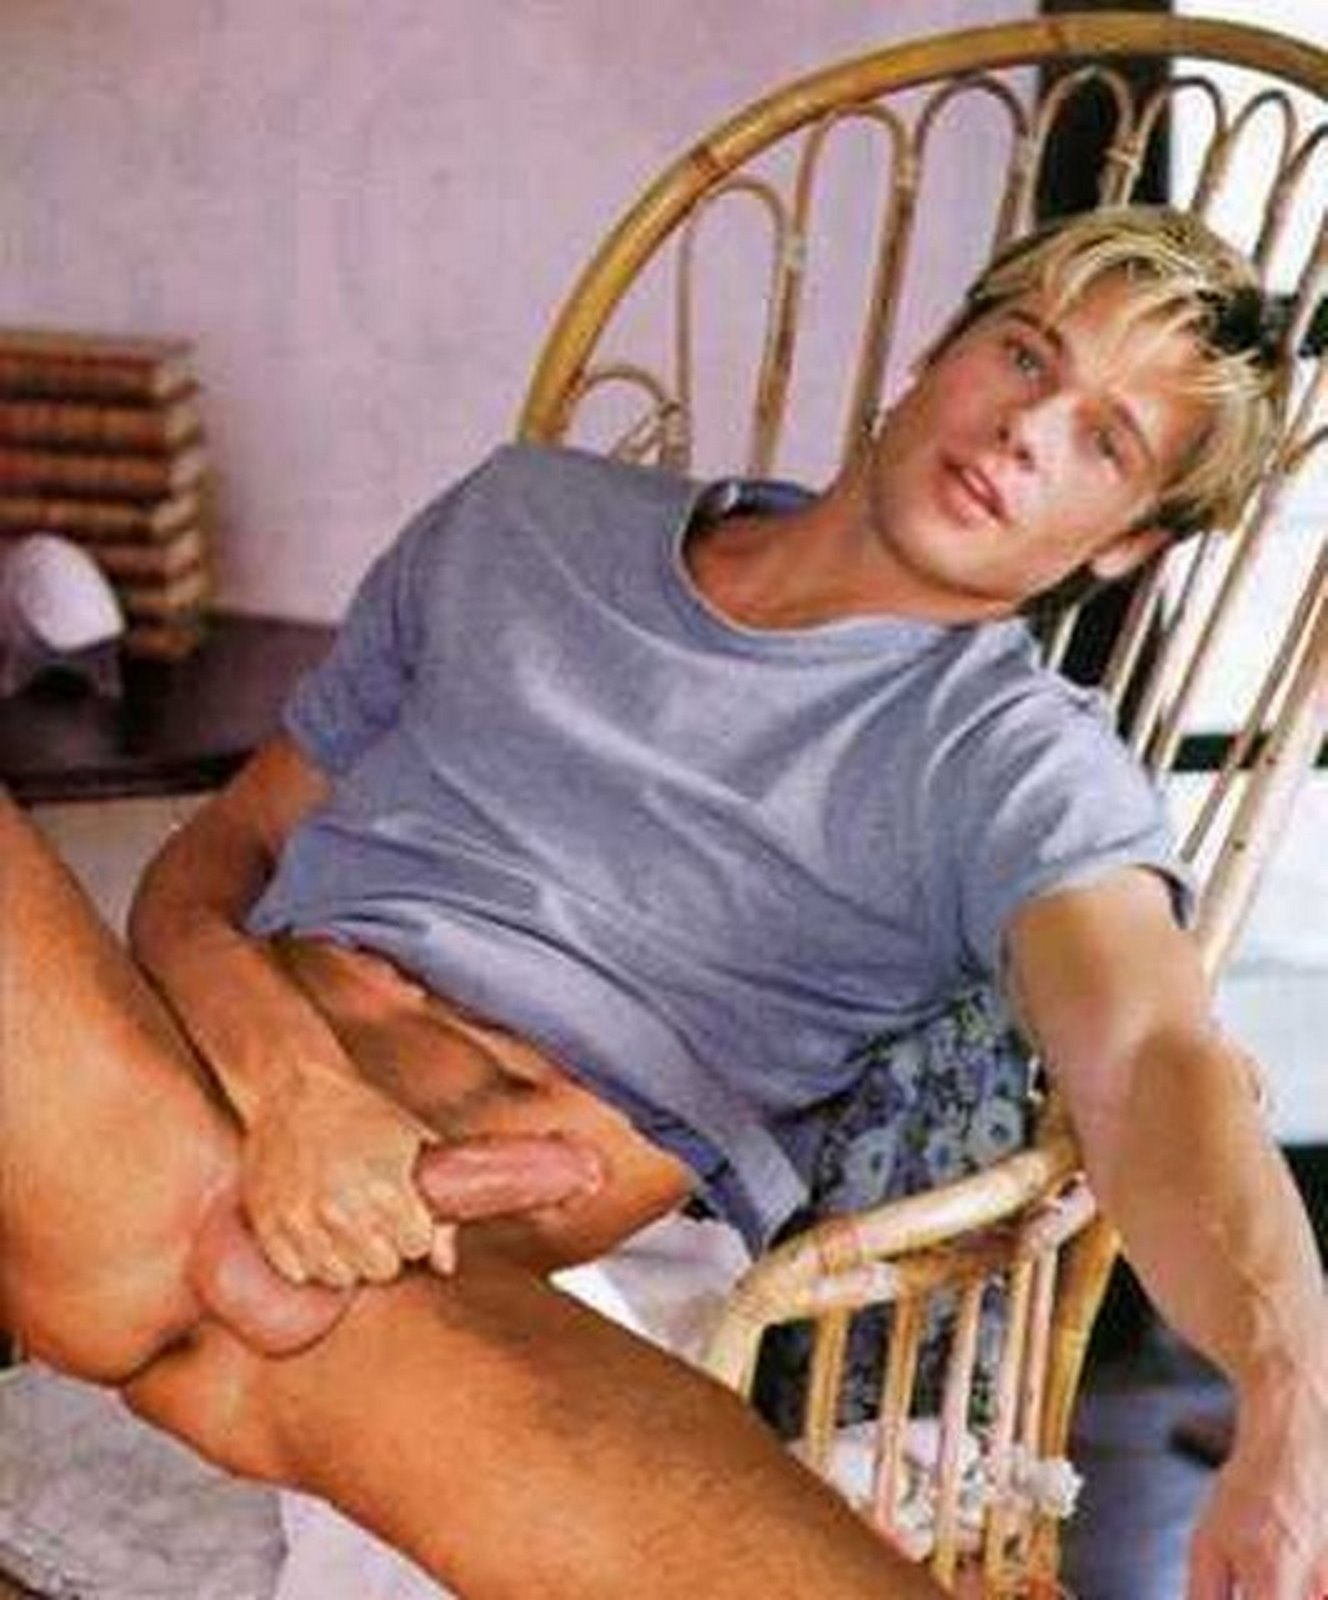 Pity, brad pitt homo porno does not